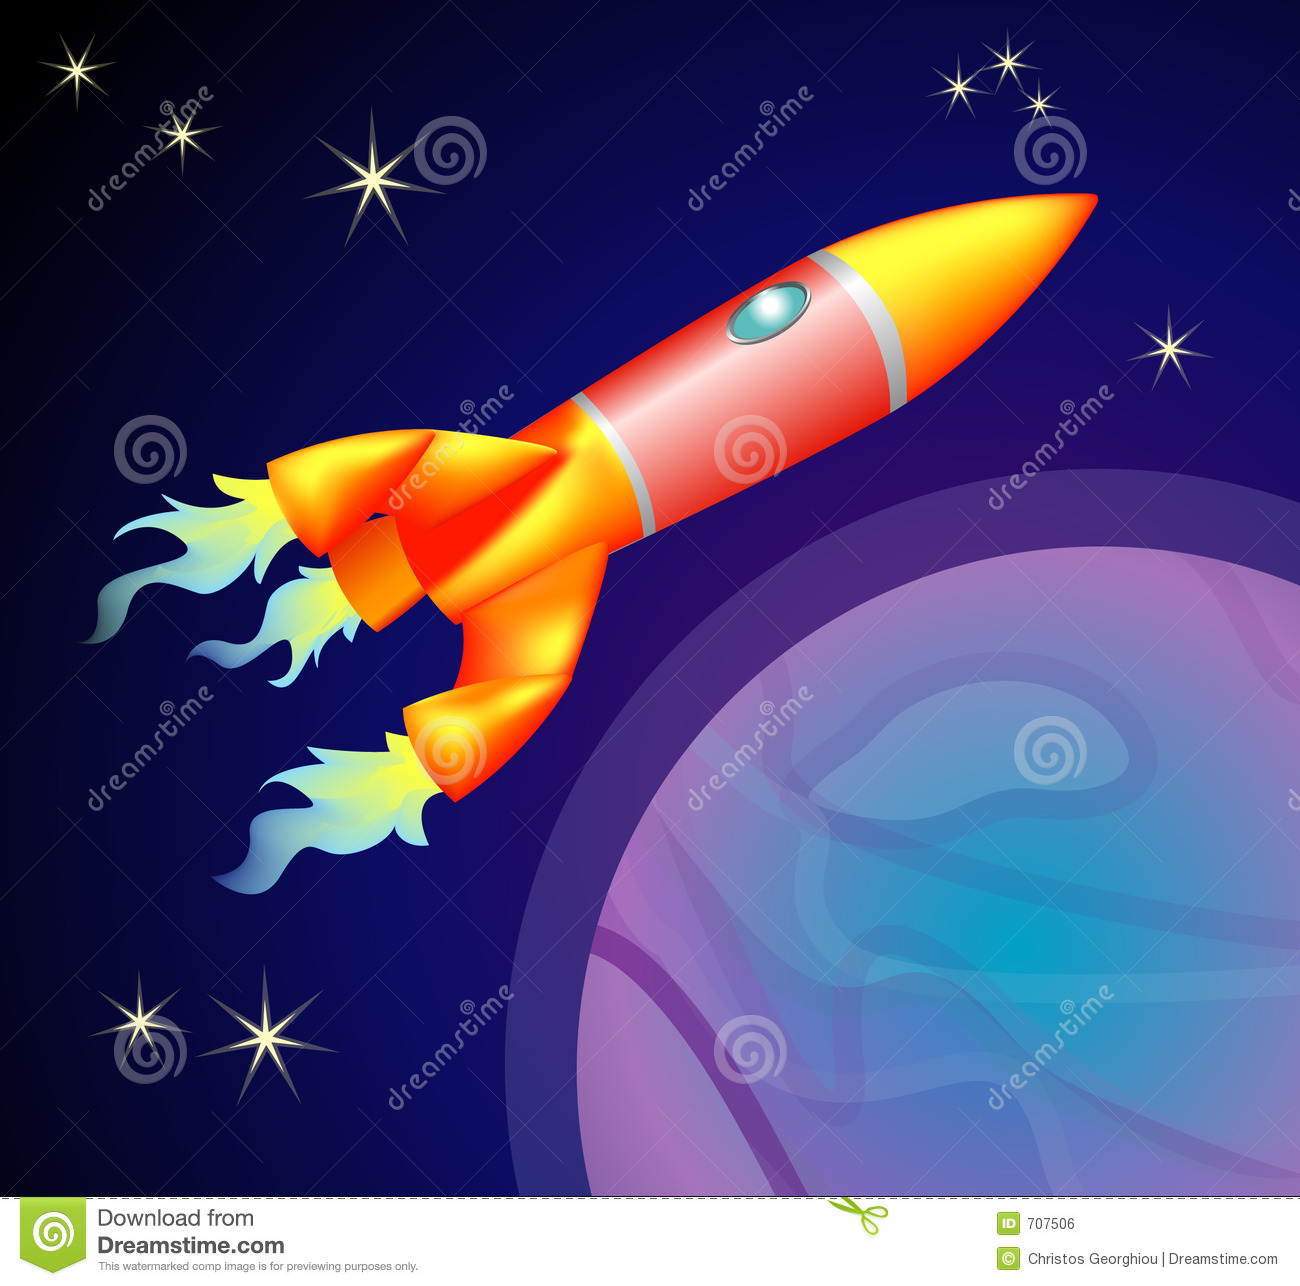 Rocket Space Ship Royalty Free Stock Image - Image: 707506